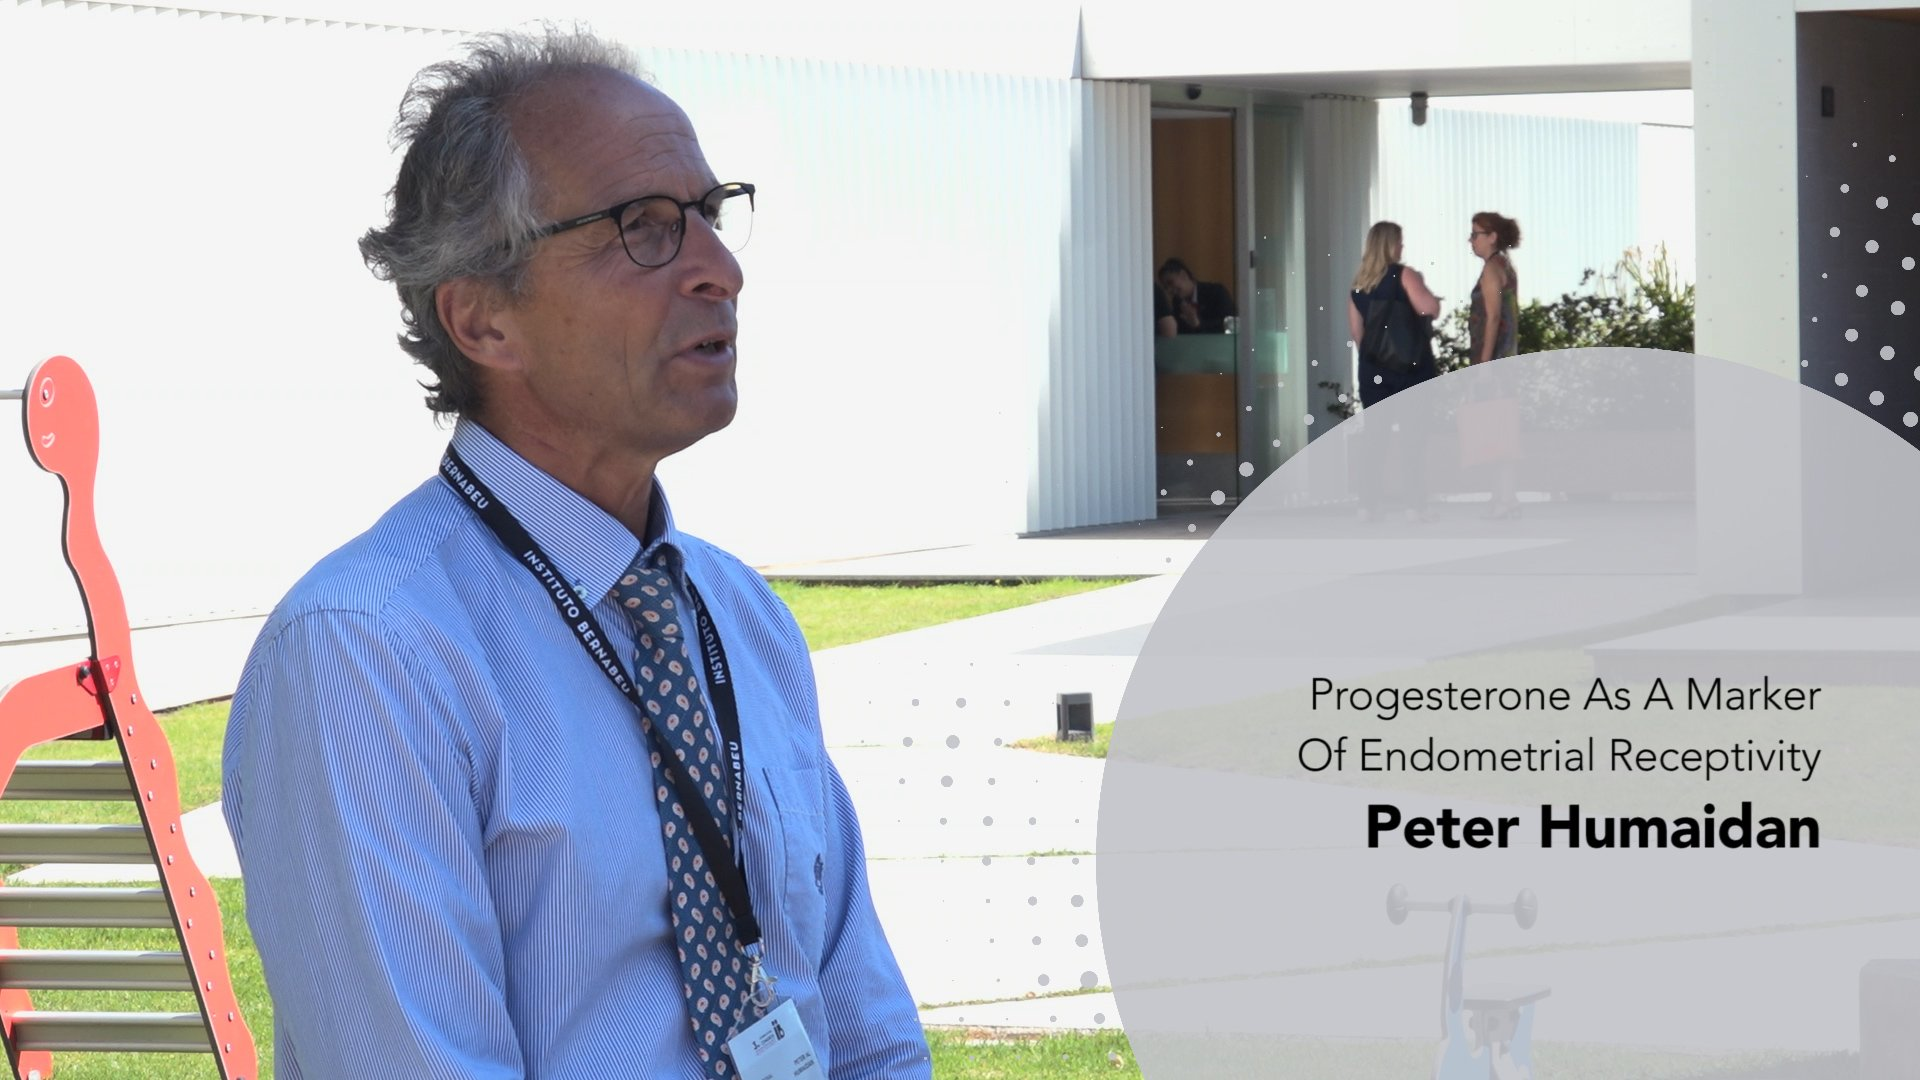 Video interview with the speakers of the Instituto Bernabeu International Conference on Advances in Reproductive Medicine